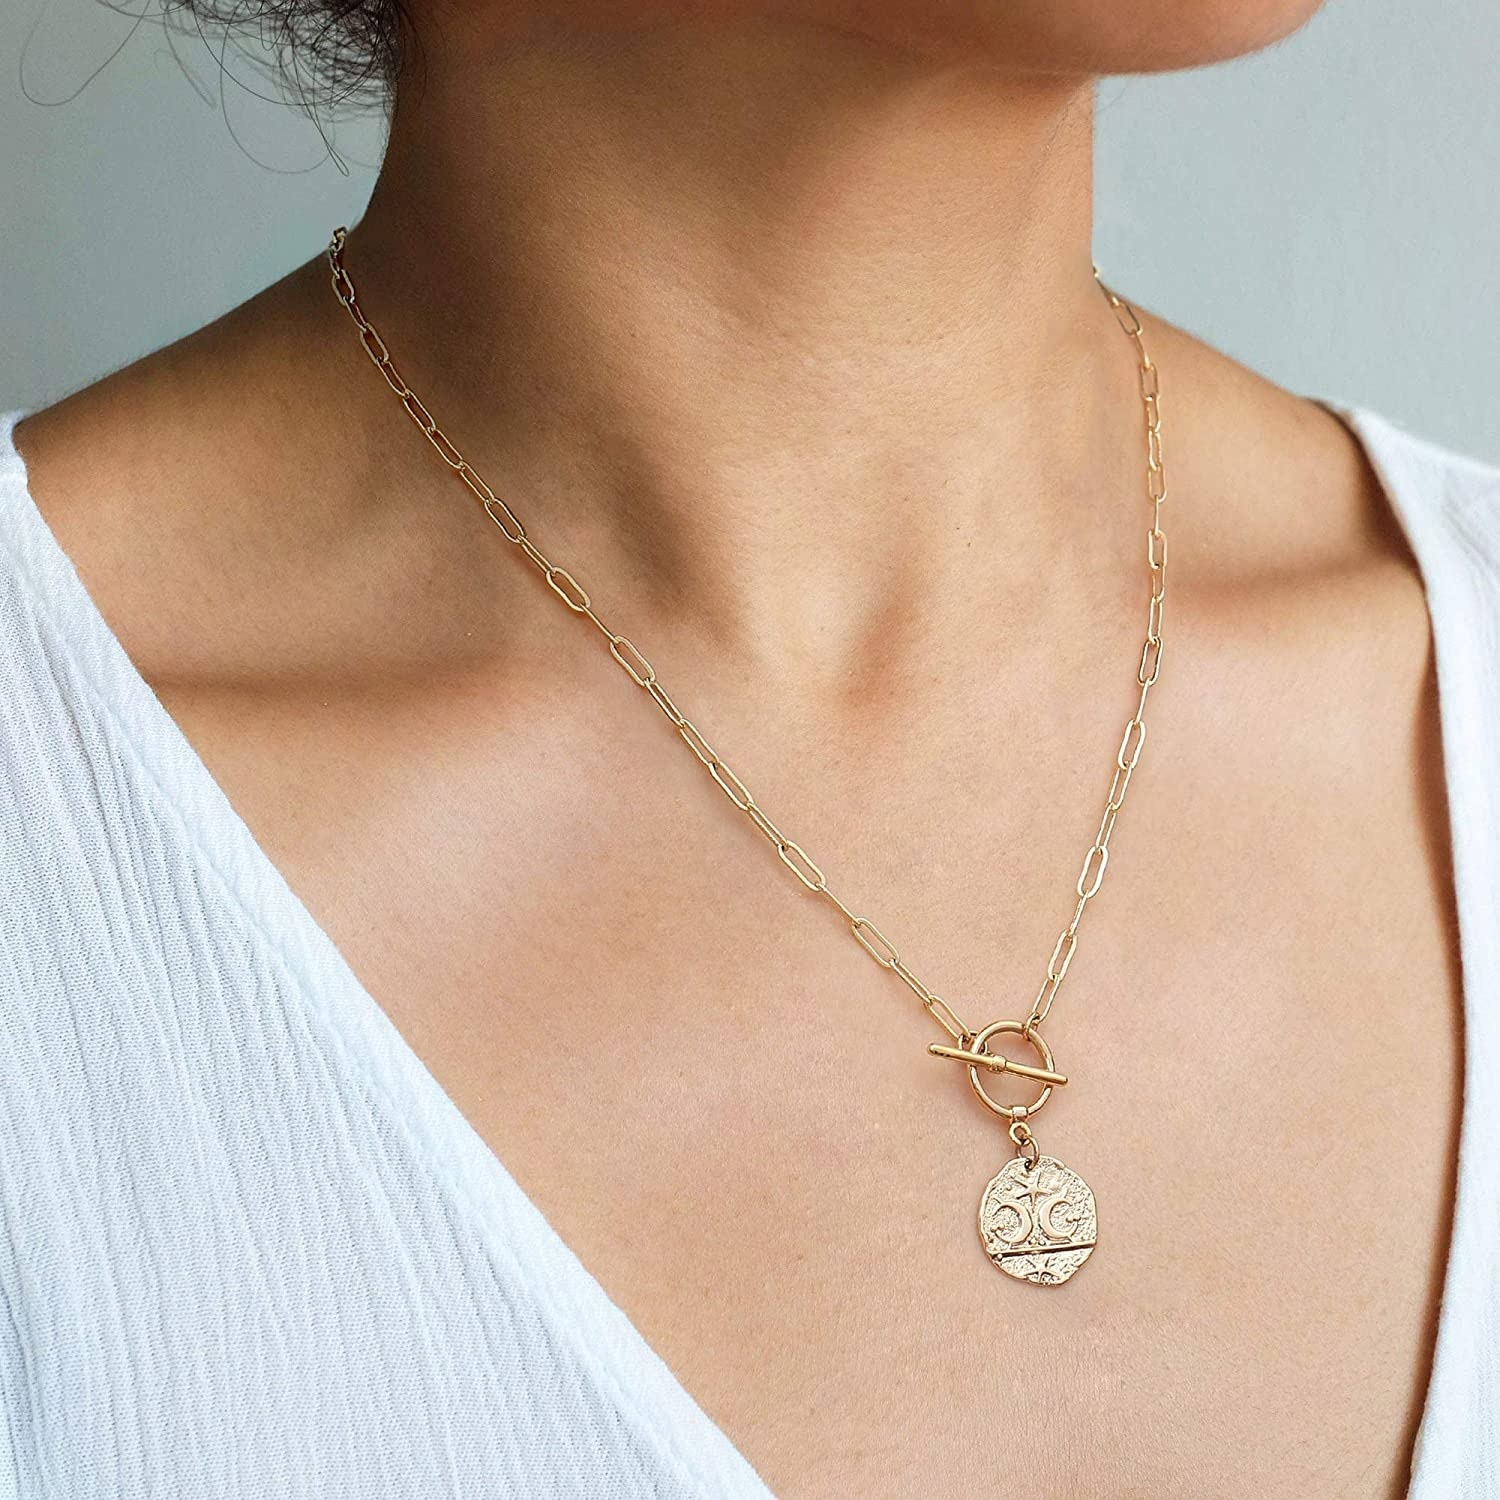 model wearing the moon and star chain